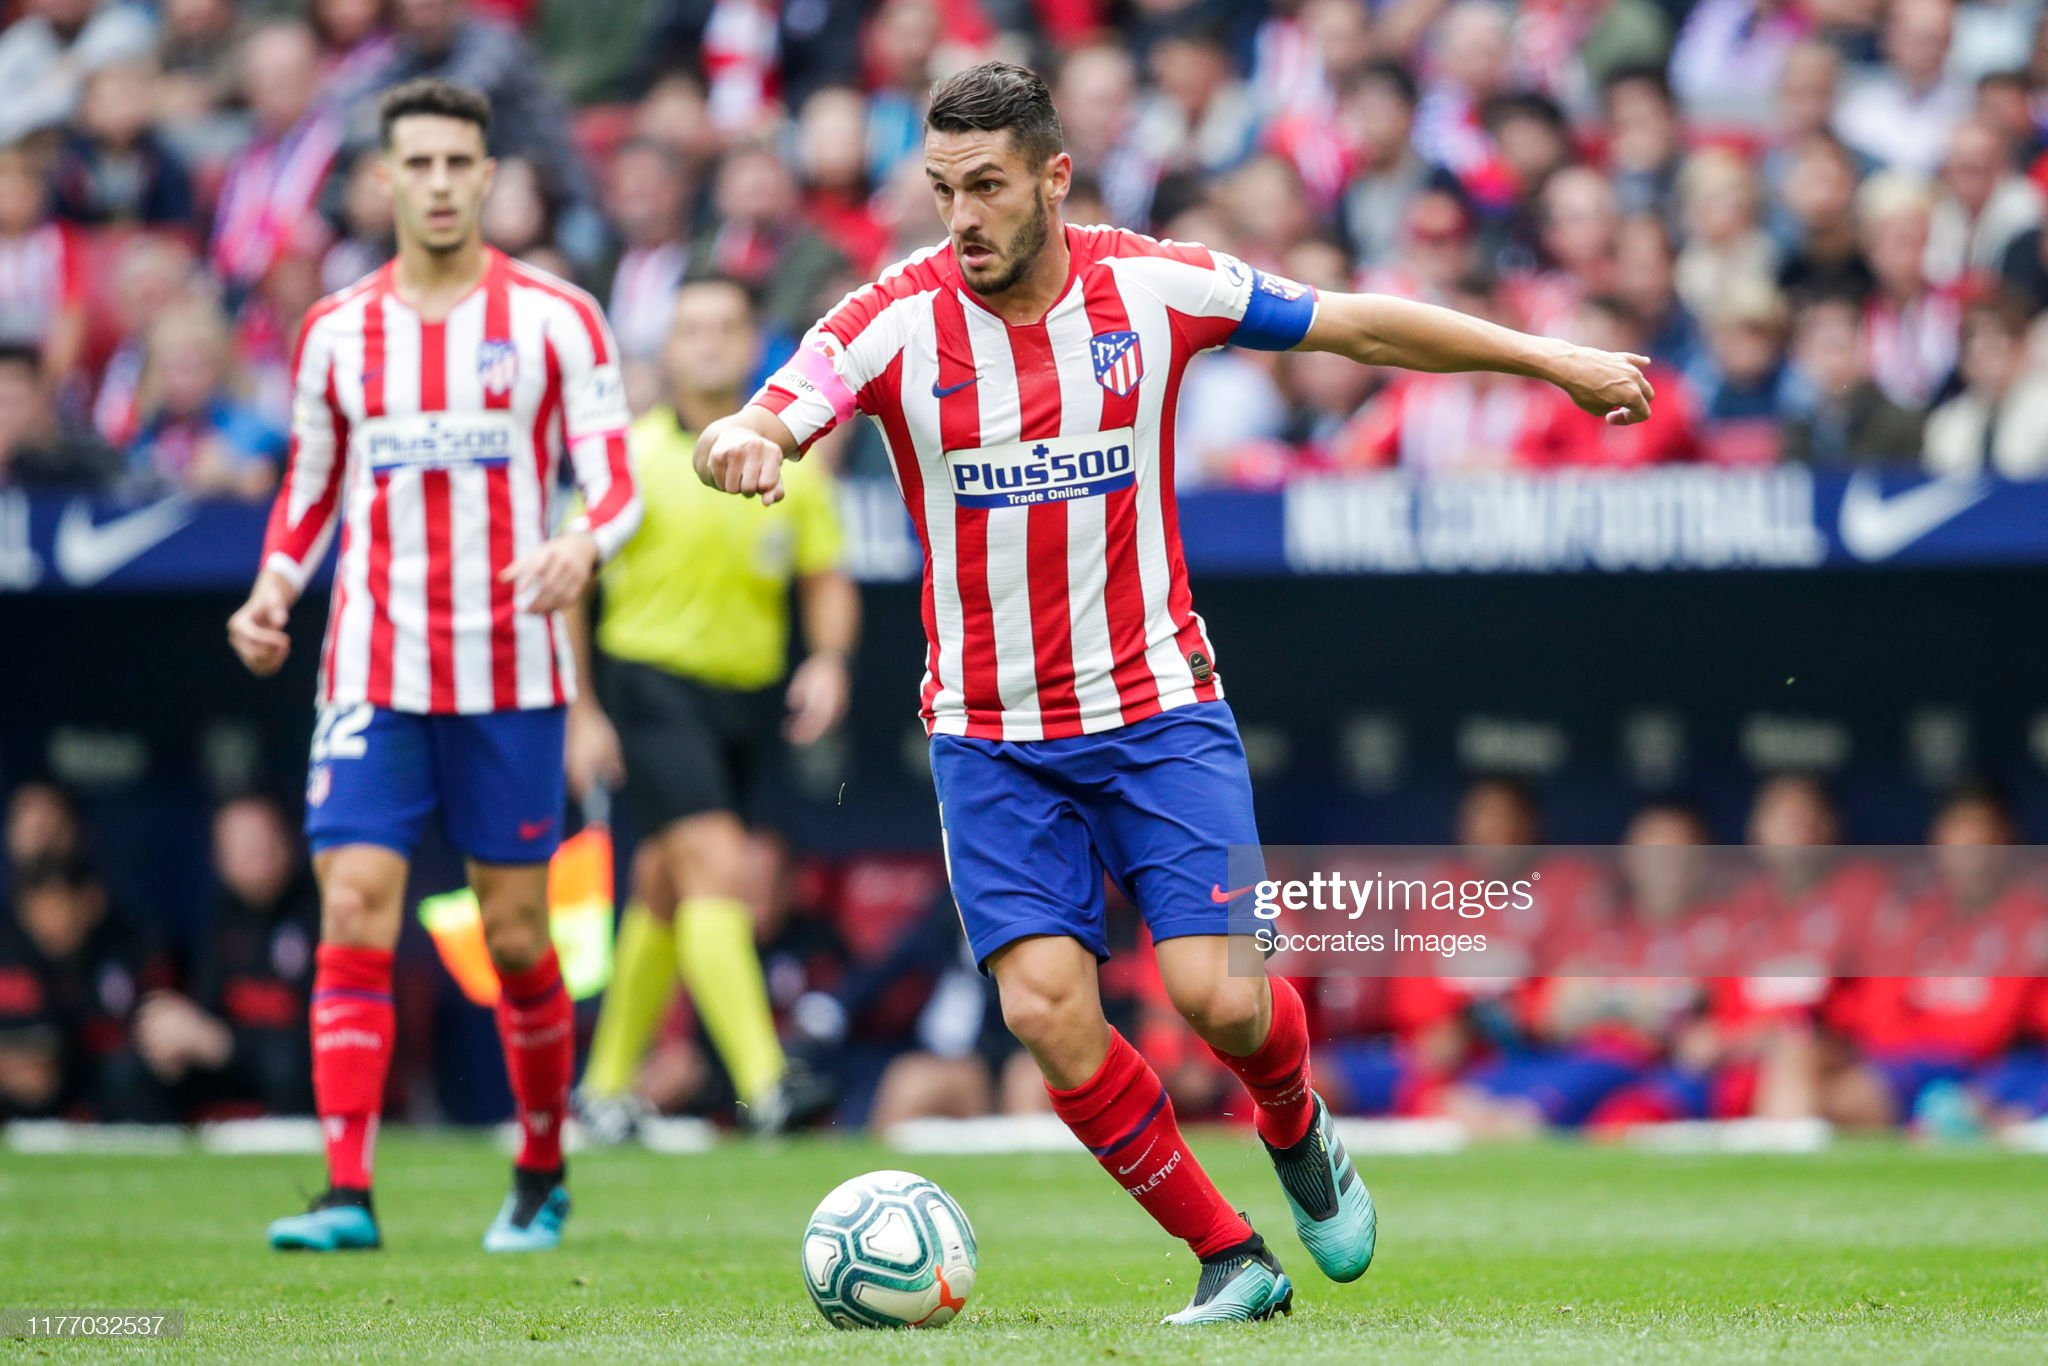 Atletico Madrid v Bayer Leverkusen preview, prediction and odds